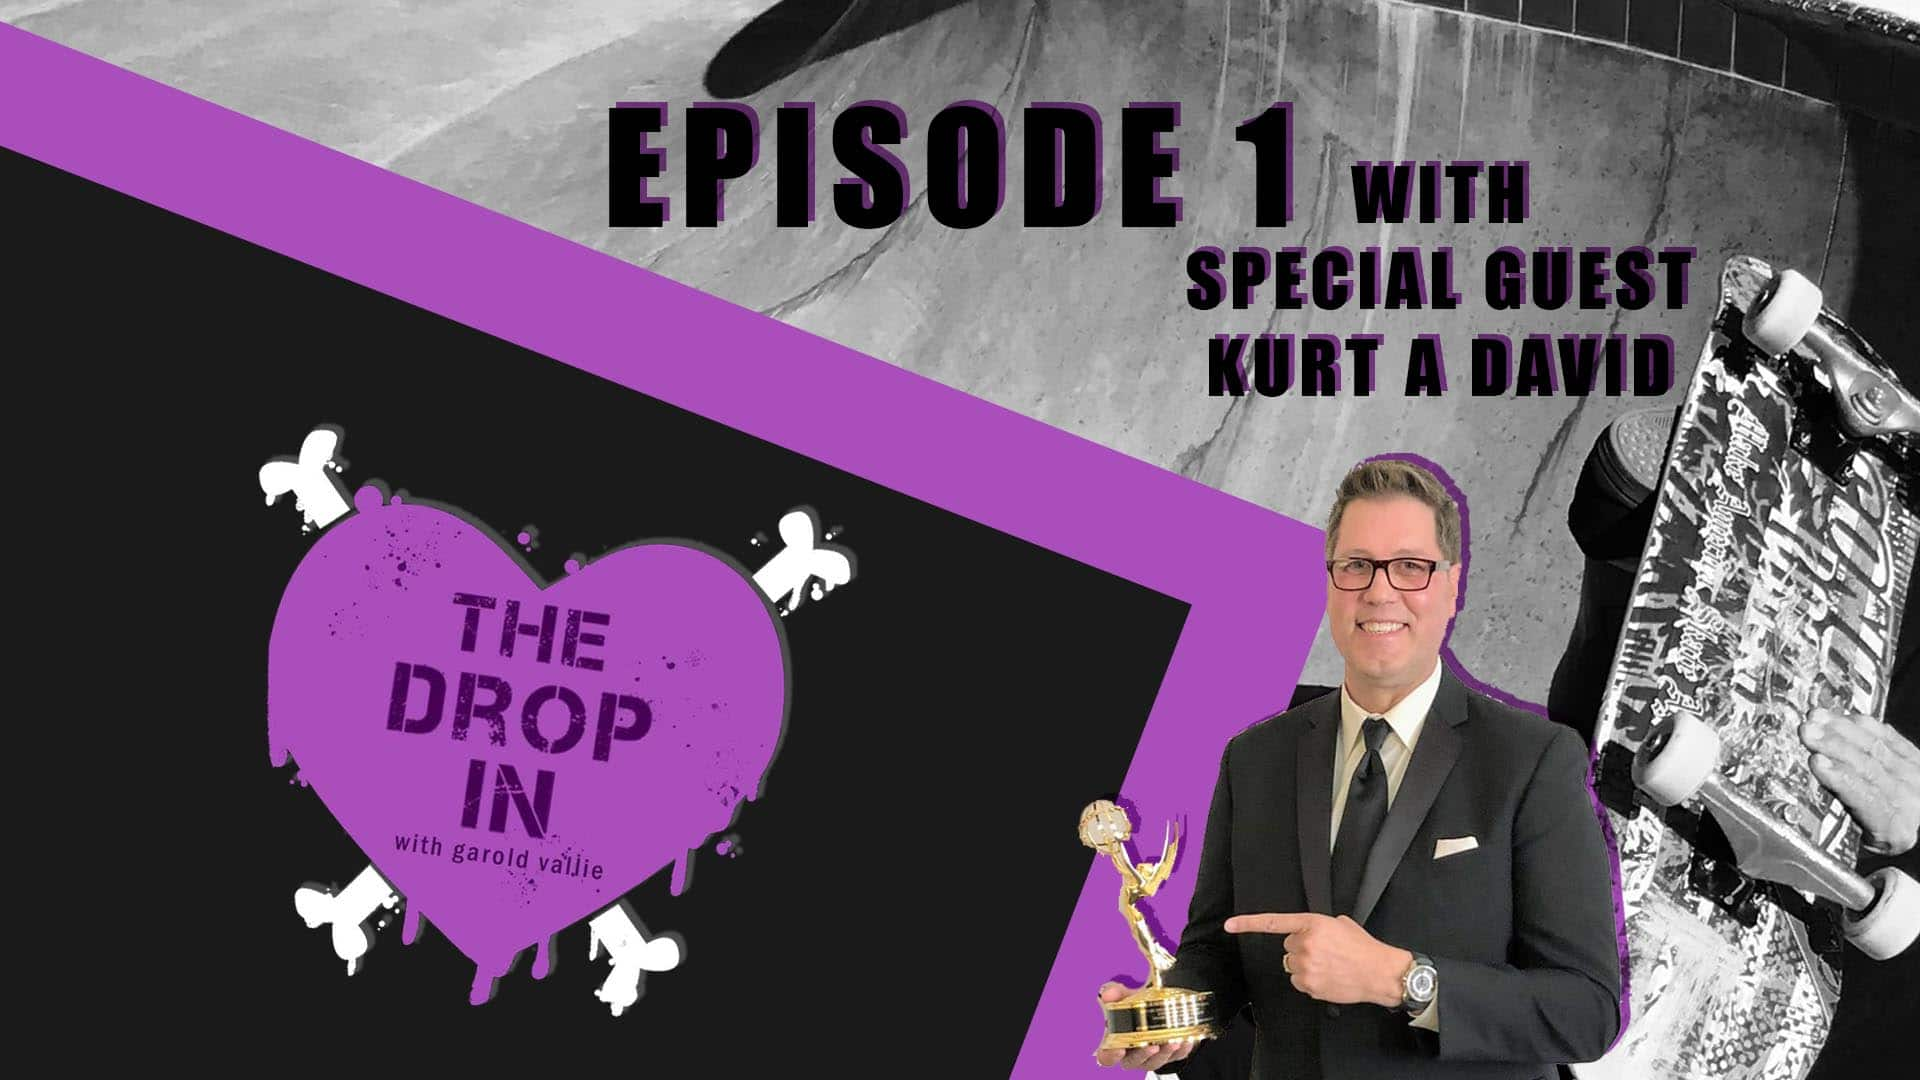 The Drop In with Garold Vallie - Episode 1